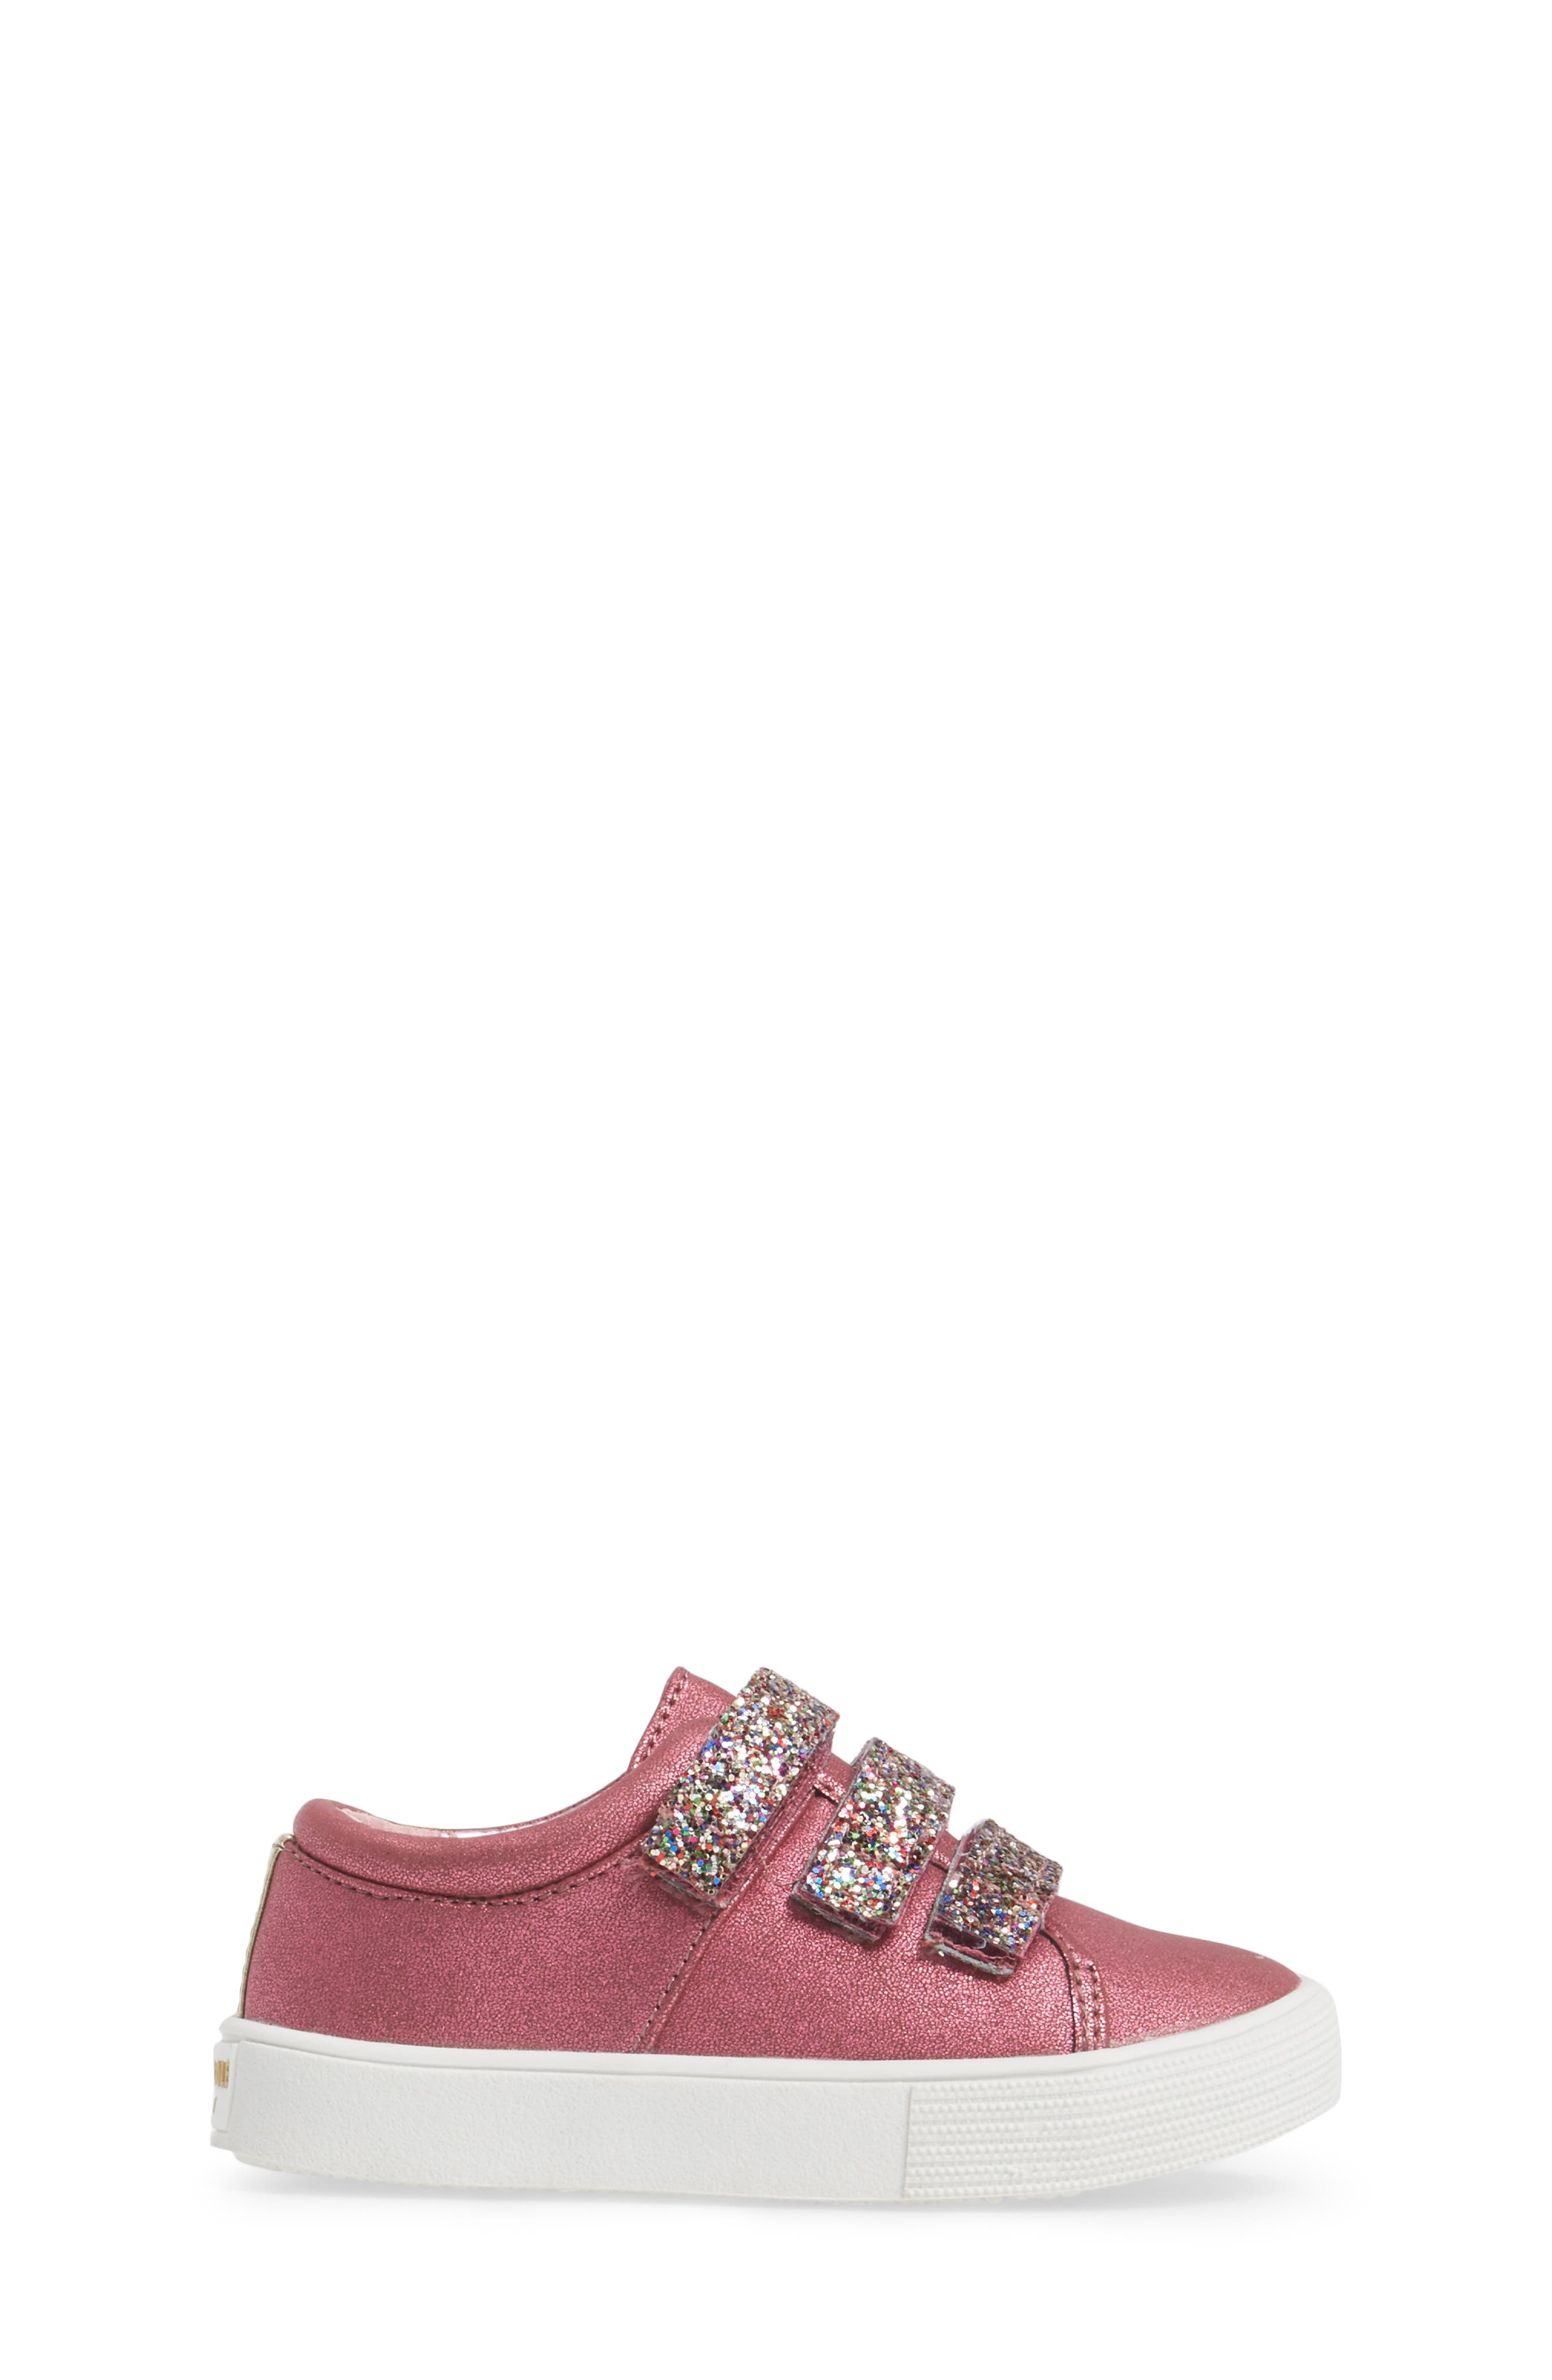 Kam Glitter Strap Sneaker,                             Alternate thumbnail 3, color,                             697